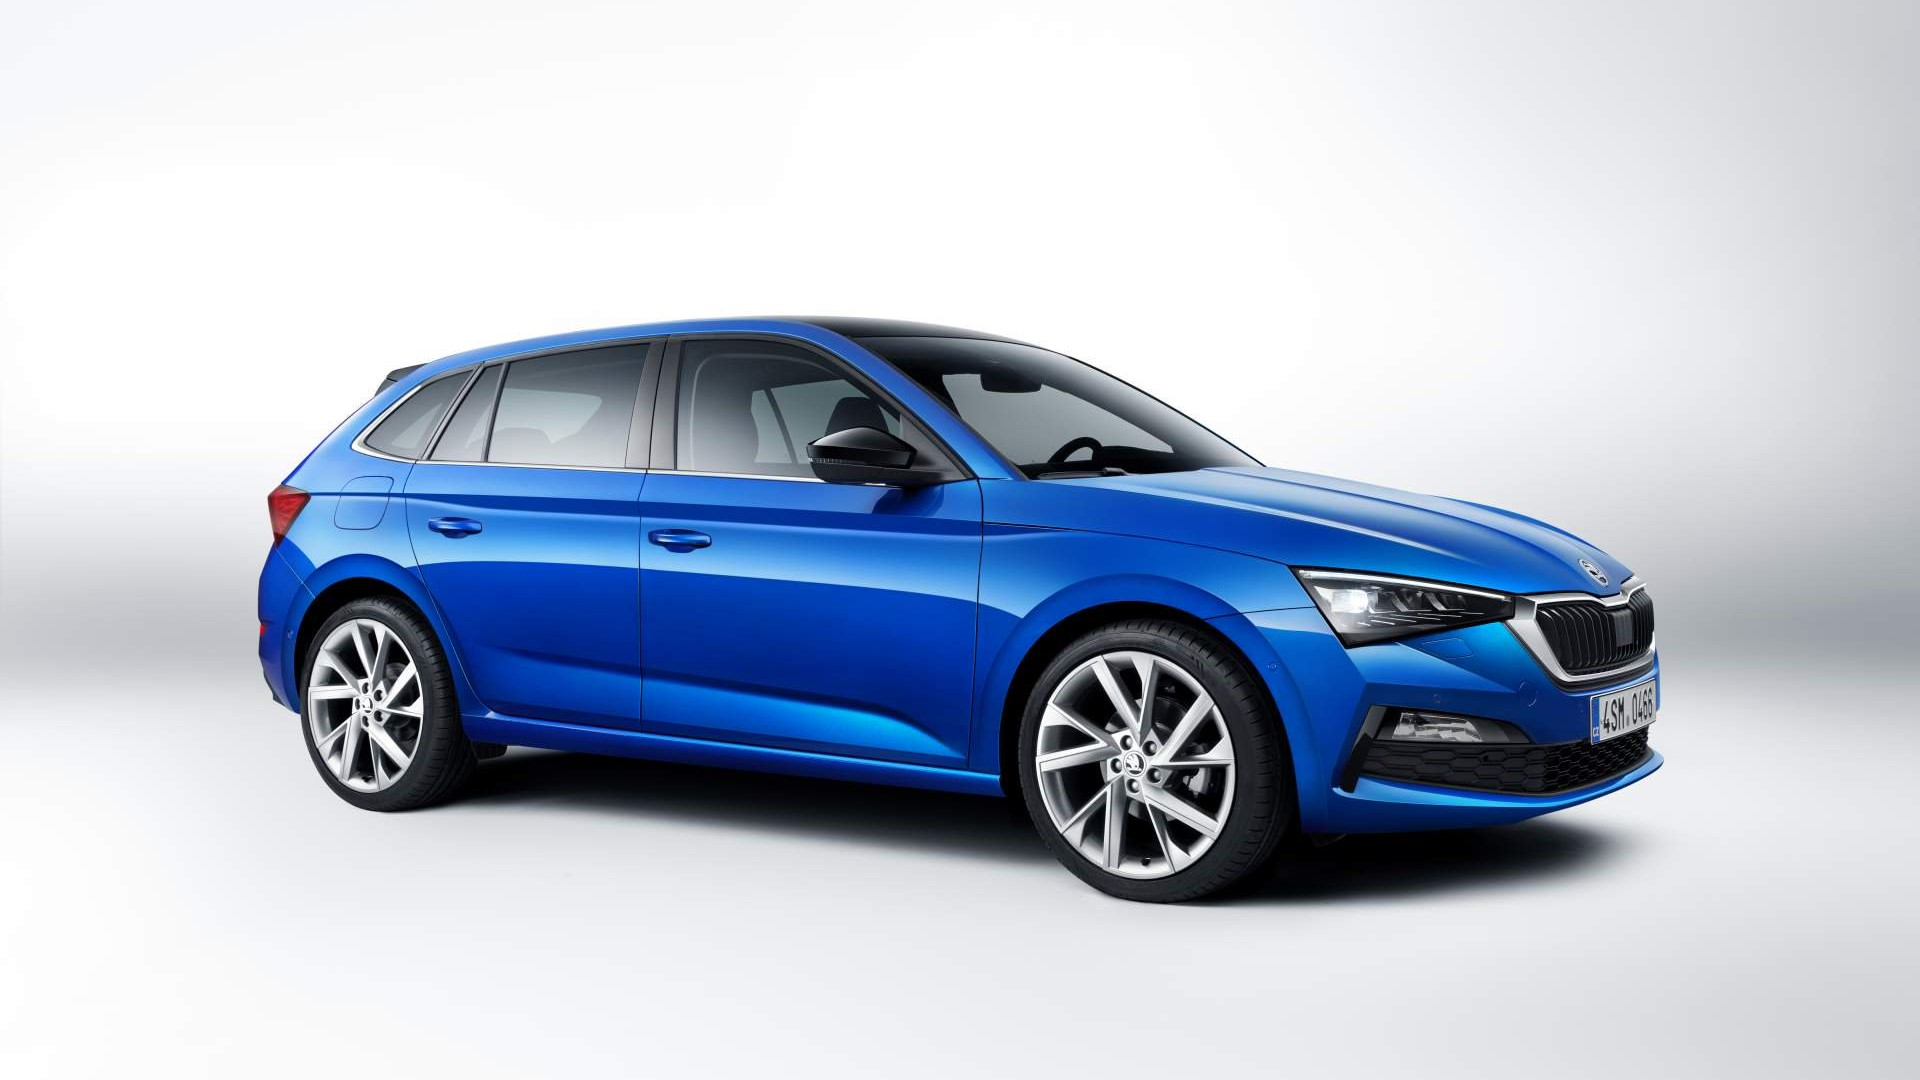 skoda-scala-unveiled-as-bold-understatement-with-modern-compact-car-tech_5